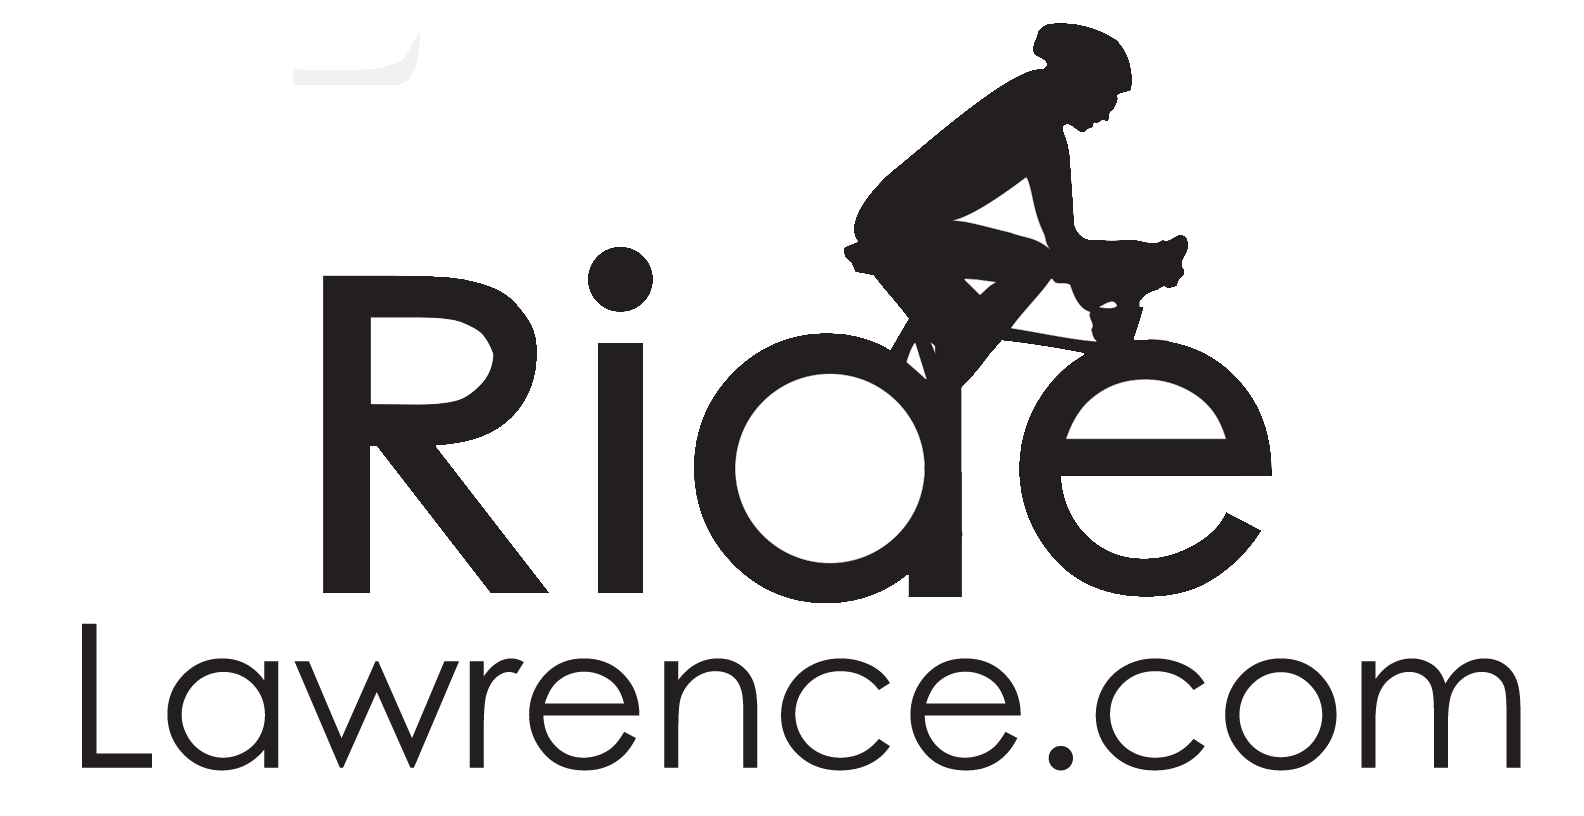 Ride Lawrence